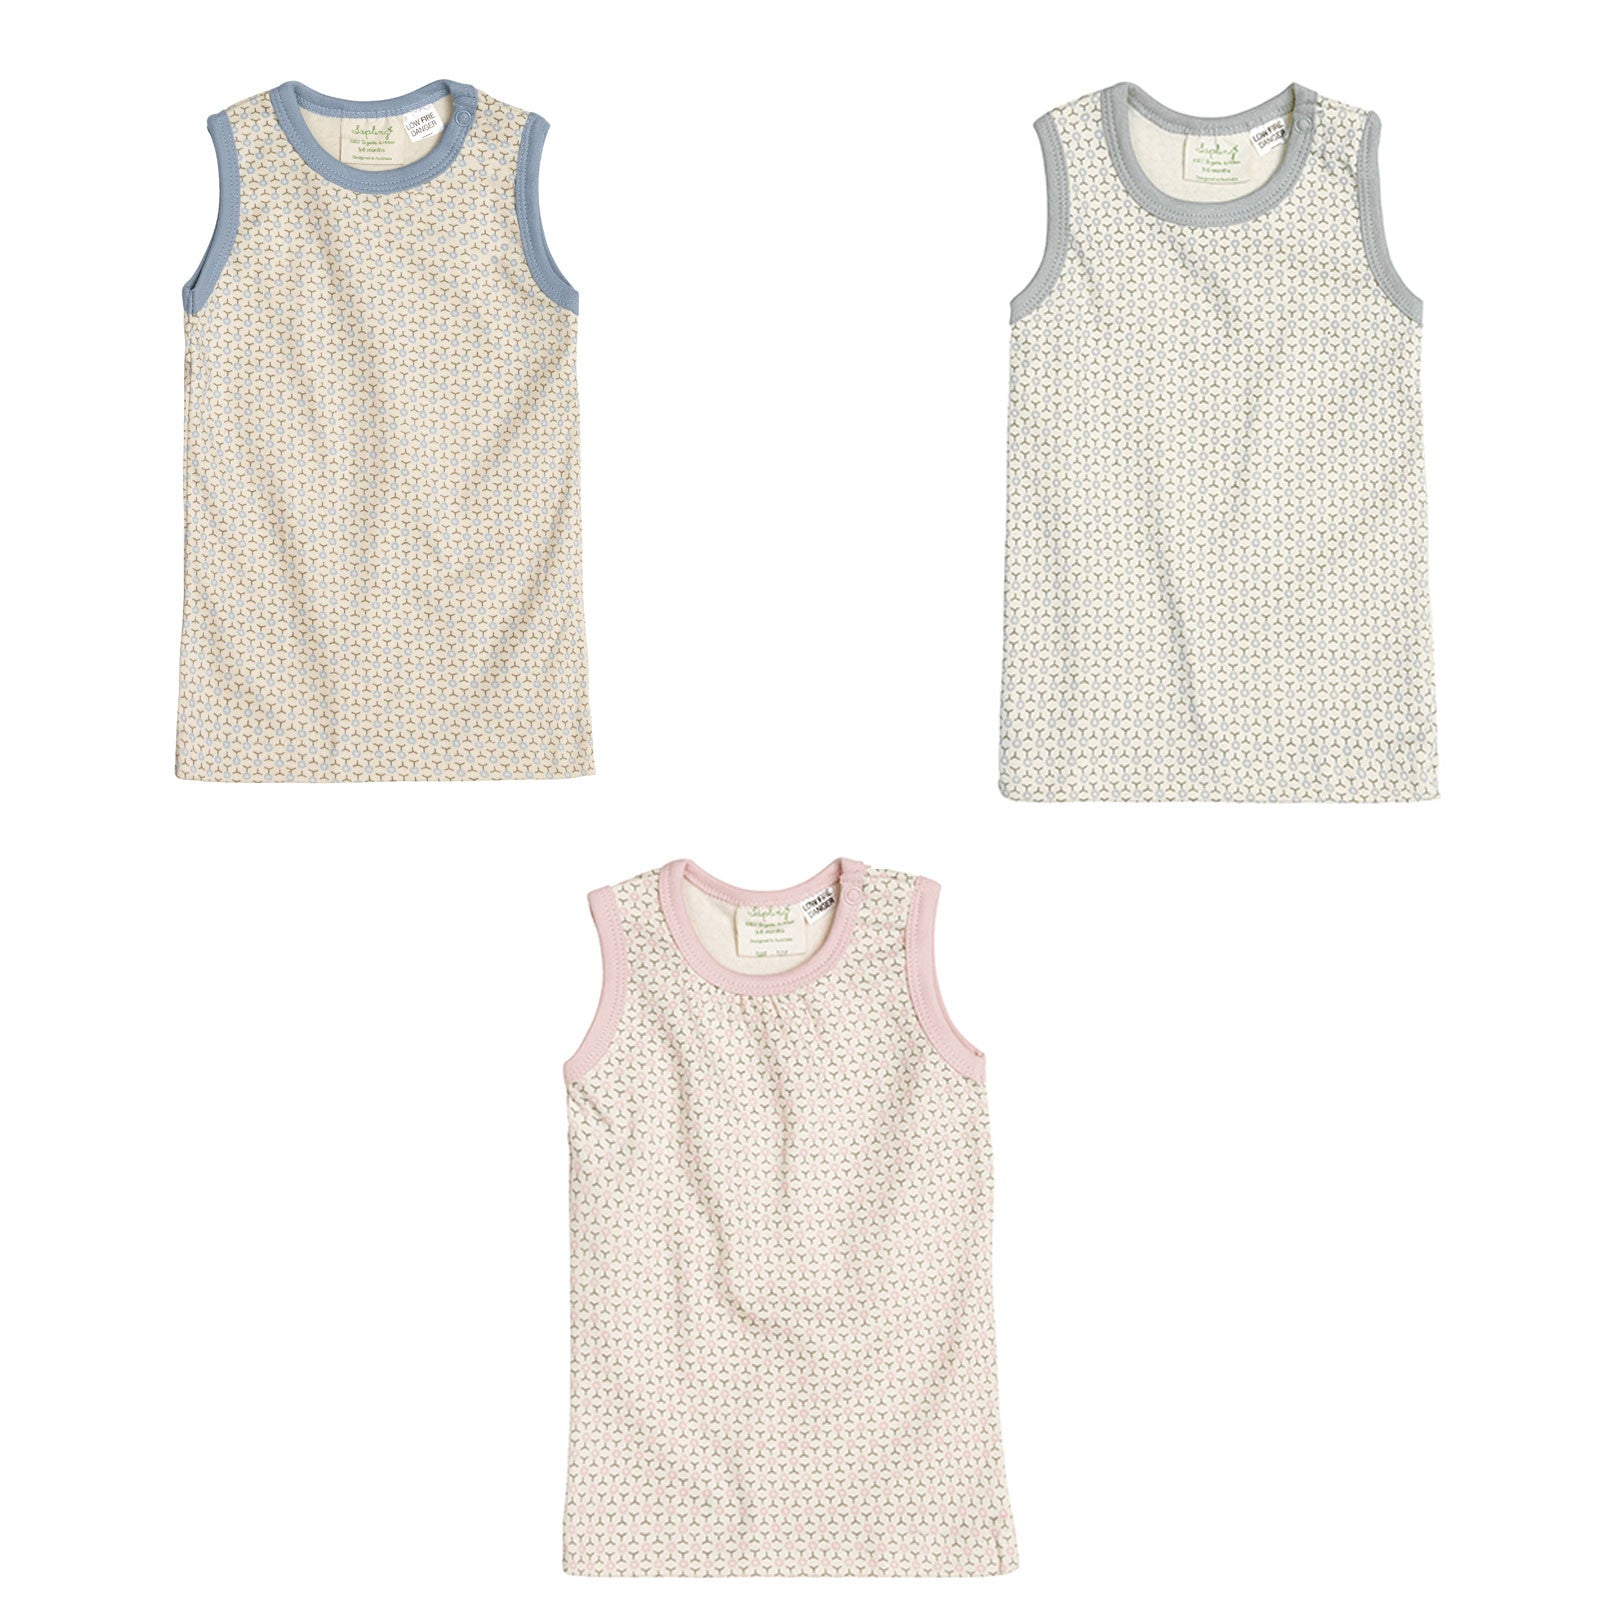 Sapling Child Essentials Tank Sapling Child Baby & Toddler Clothing at Little Earth Nest Eco Shop